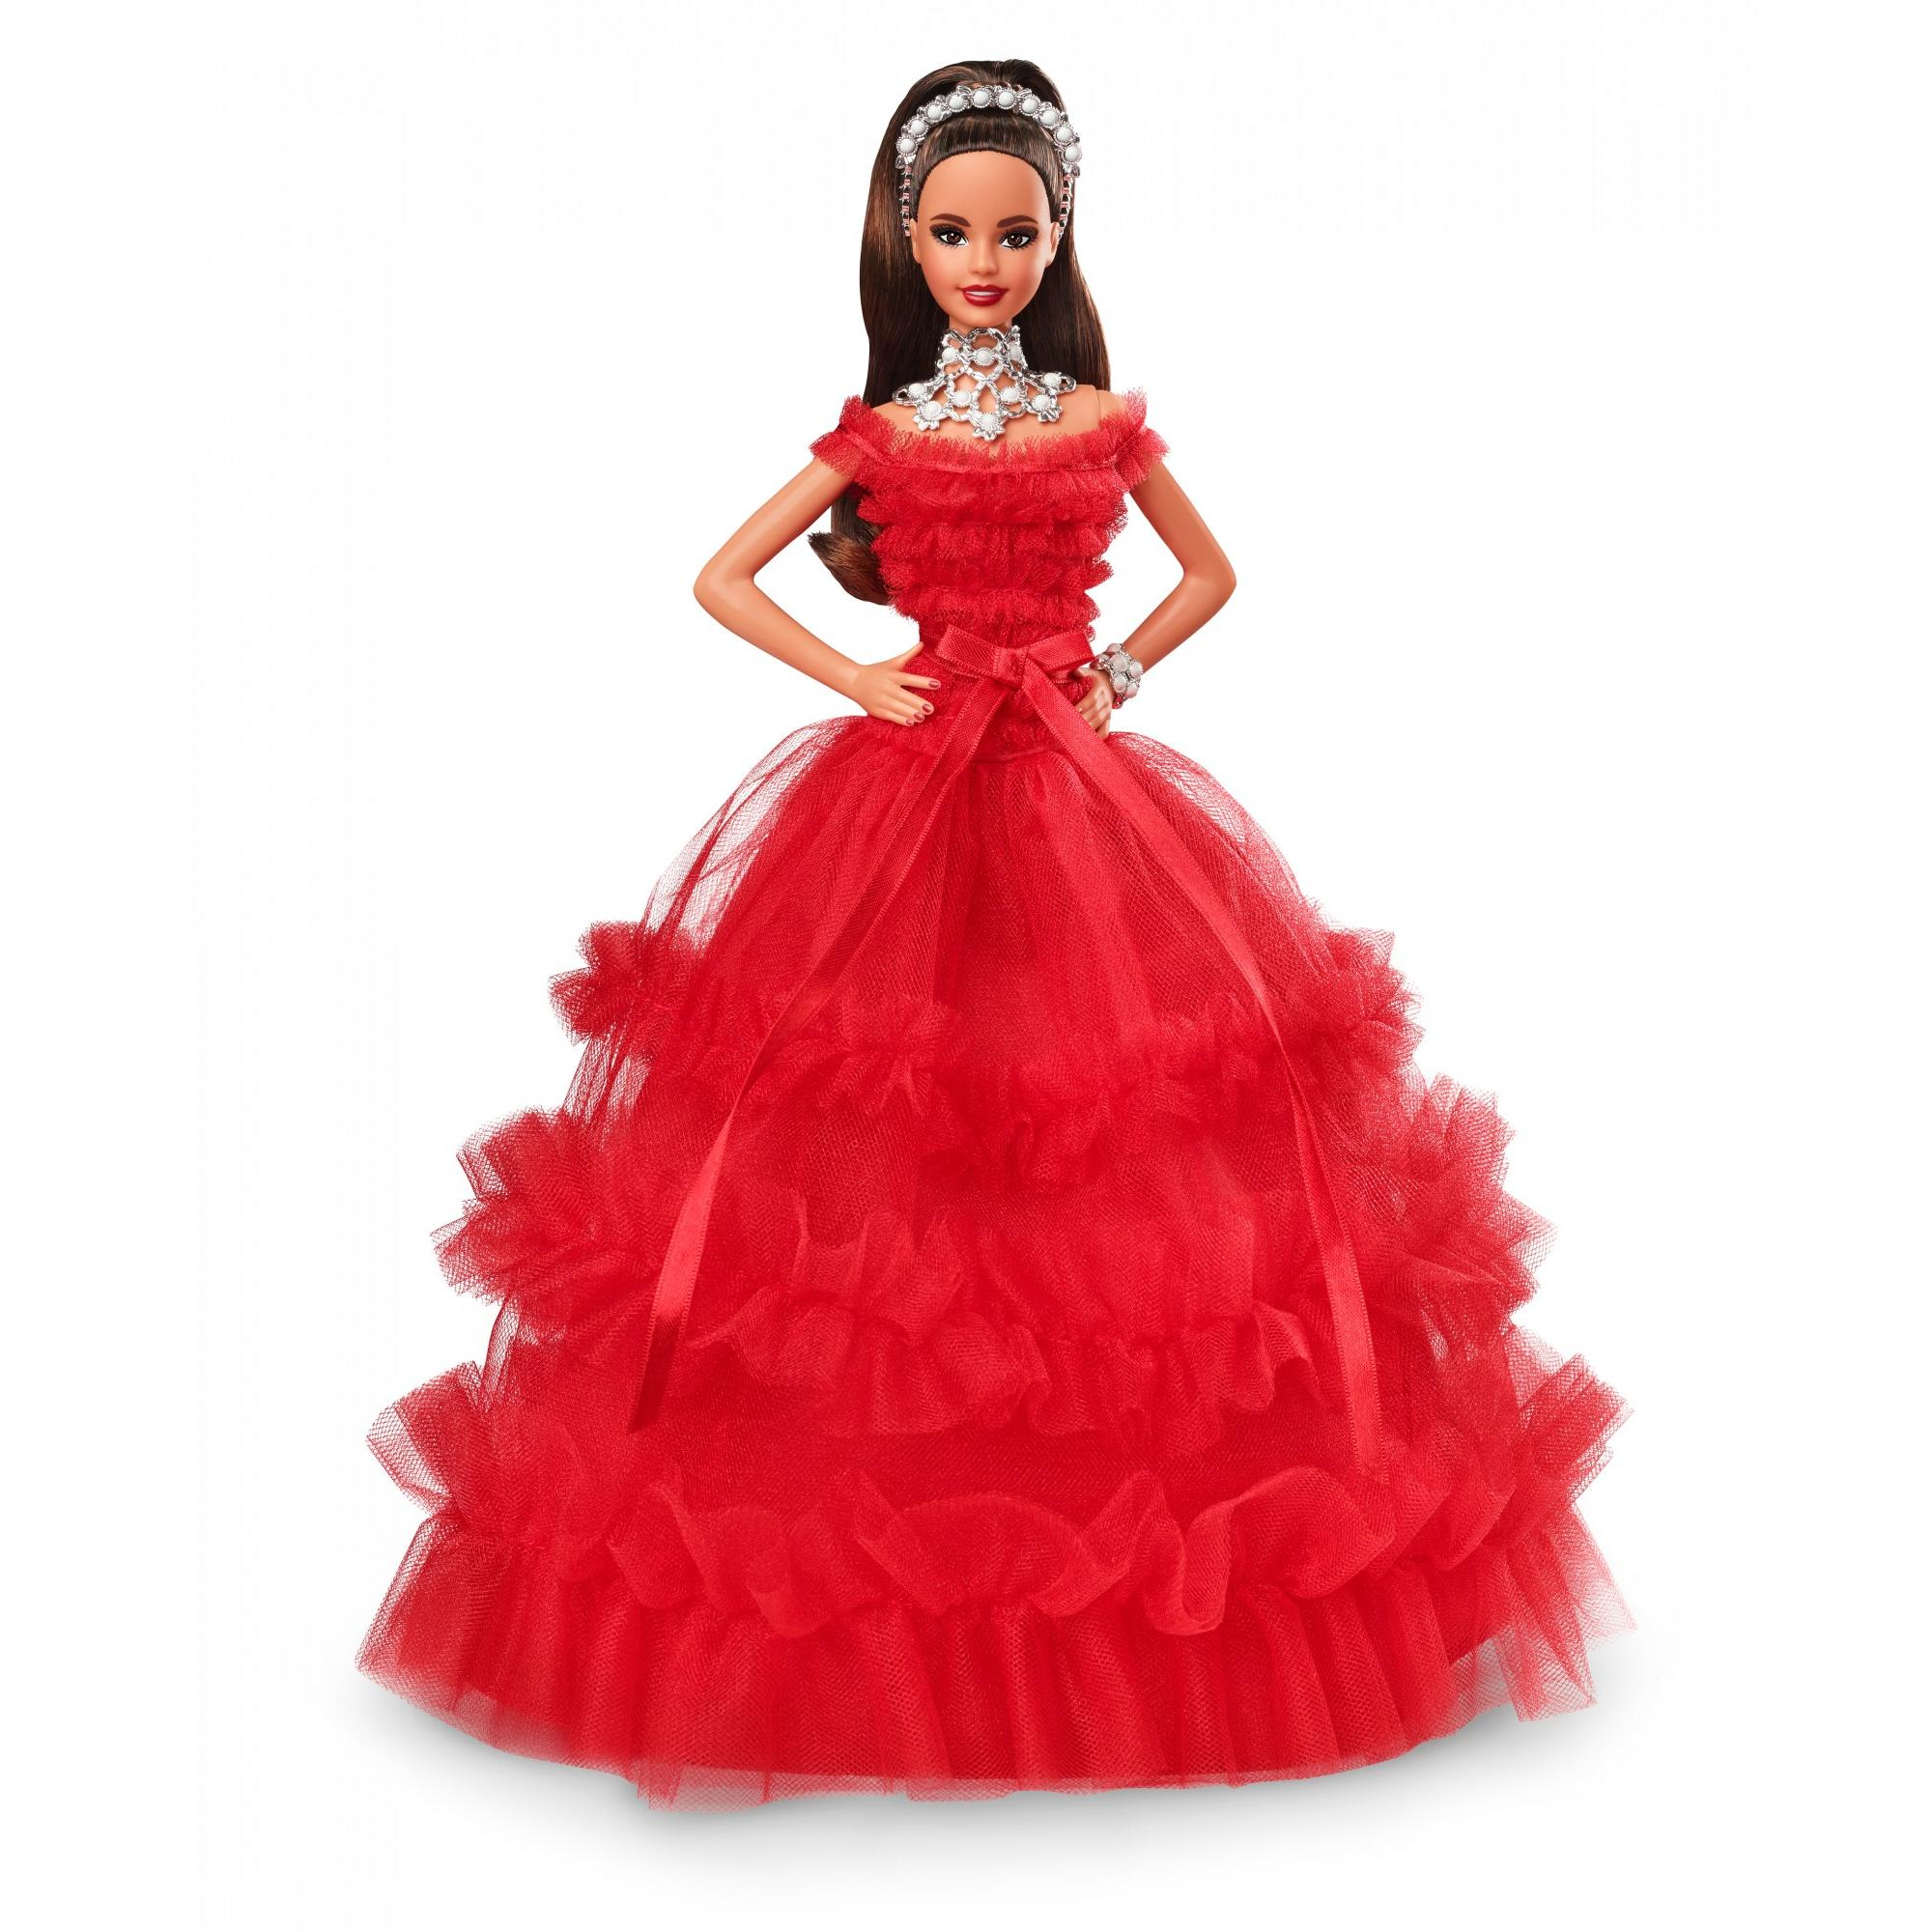 2018 Holiday Collector Barbie Signature Teresa Doll with Stand by Mattel